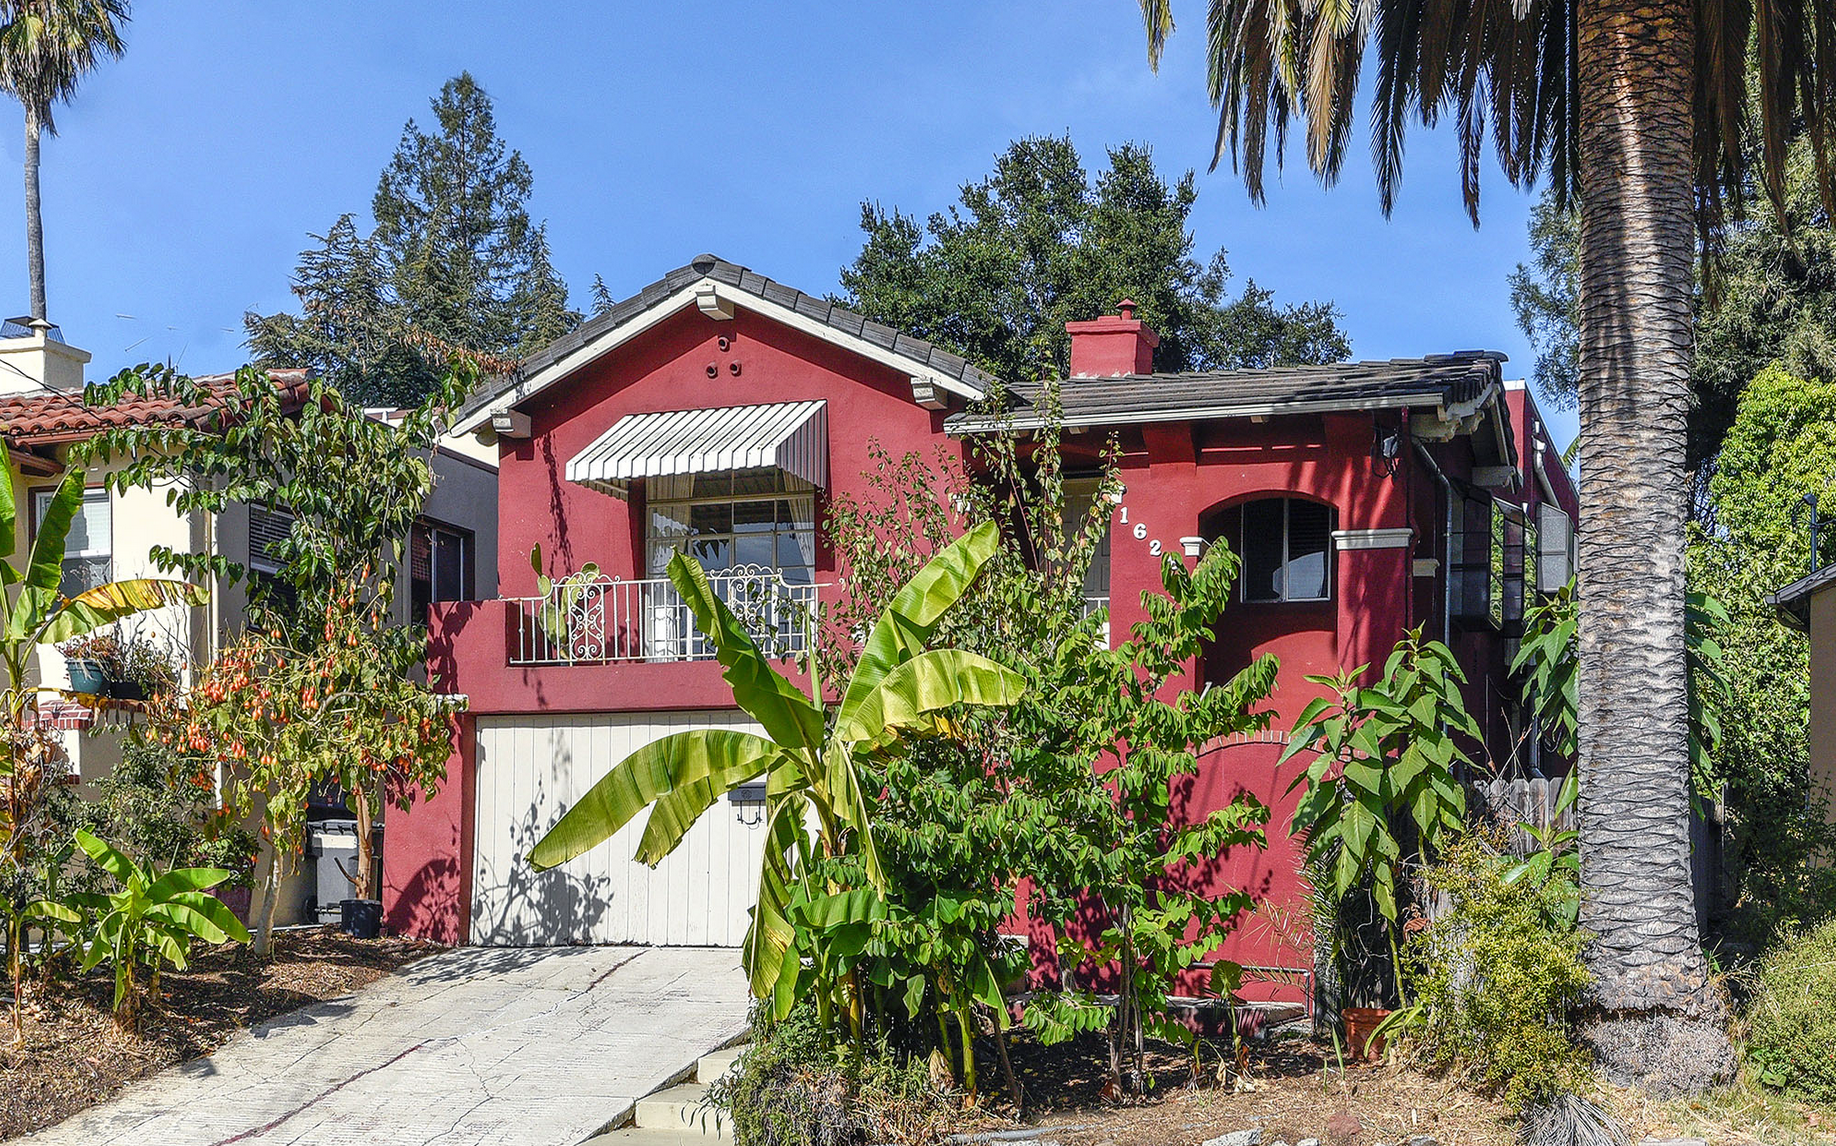 1626 Hampel St., Oakland   3 Bed - 2 Bath + 1 Bed - 1 Bath In Law  $900,000  Represented: Seller